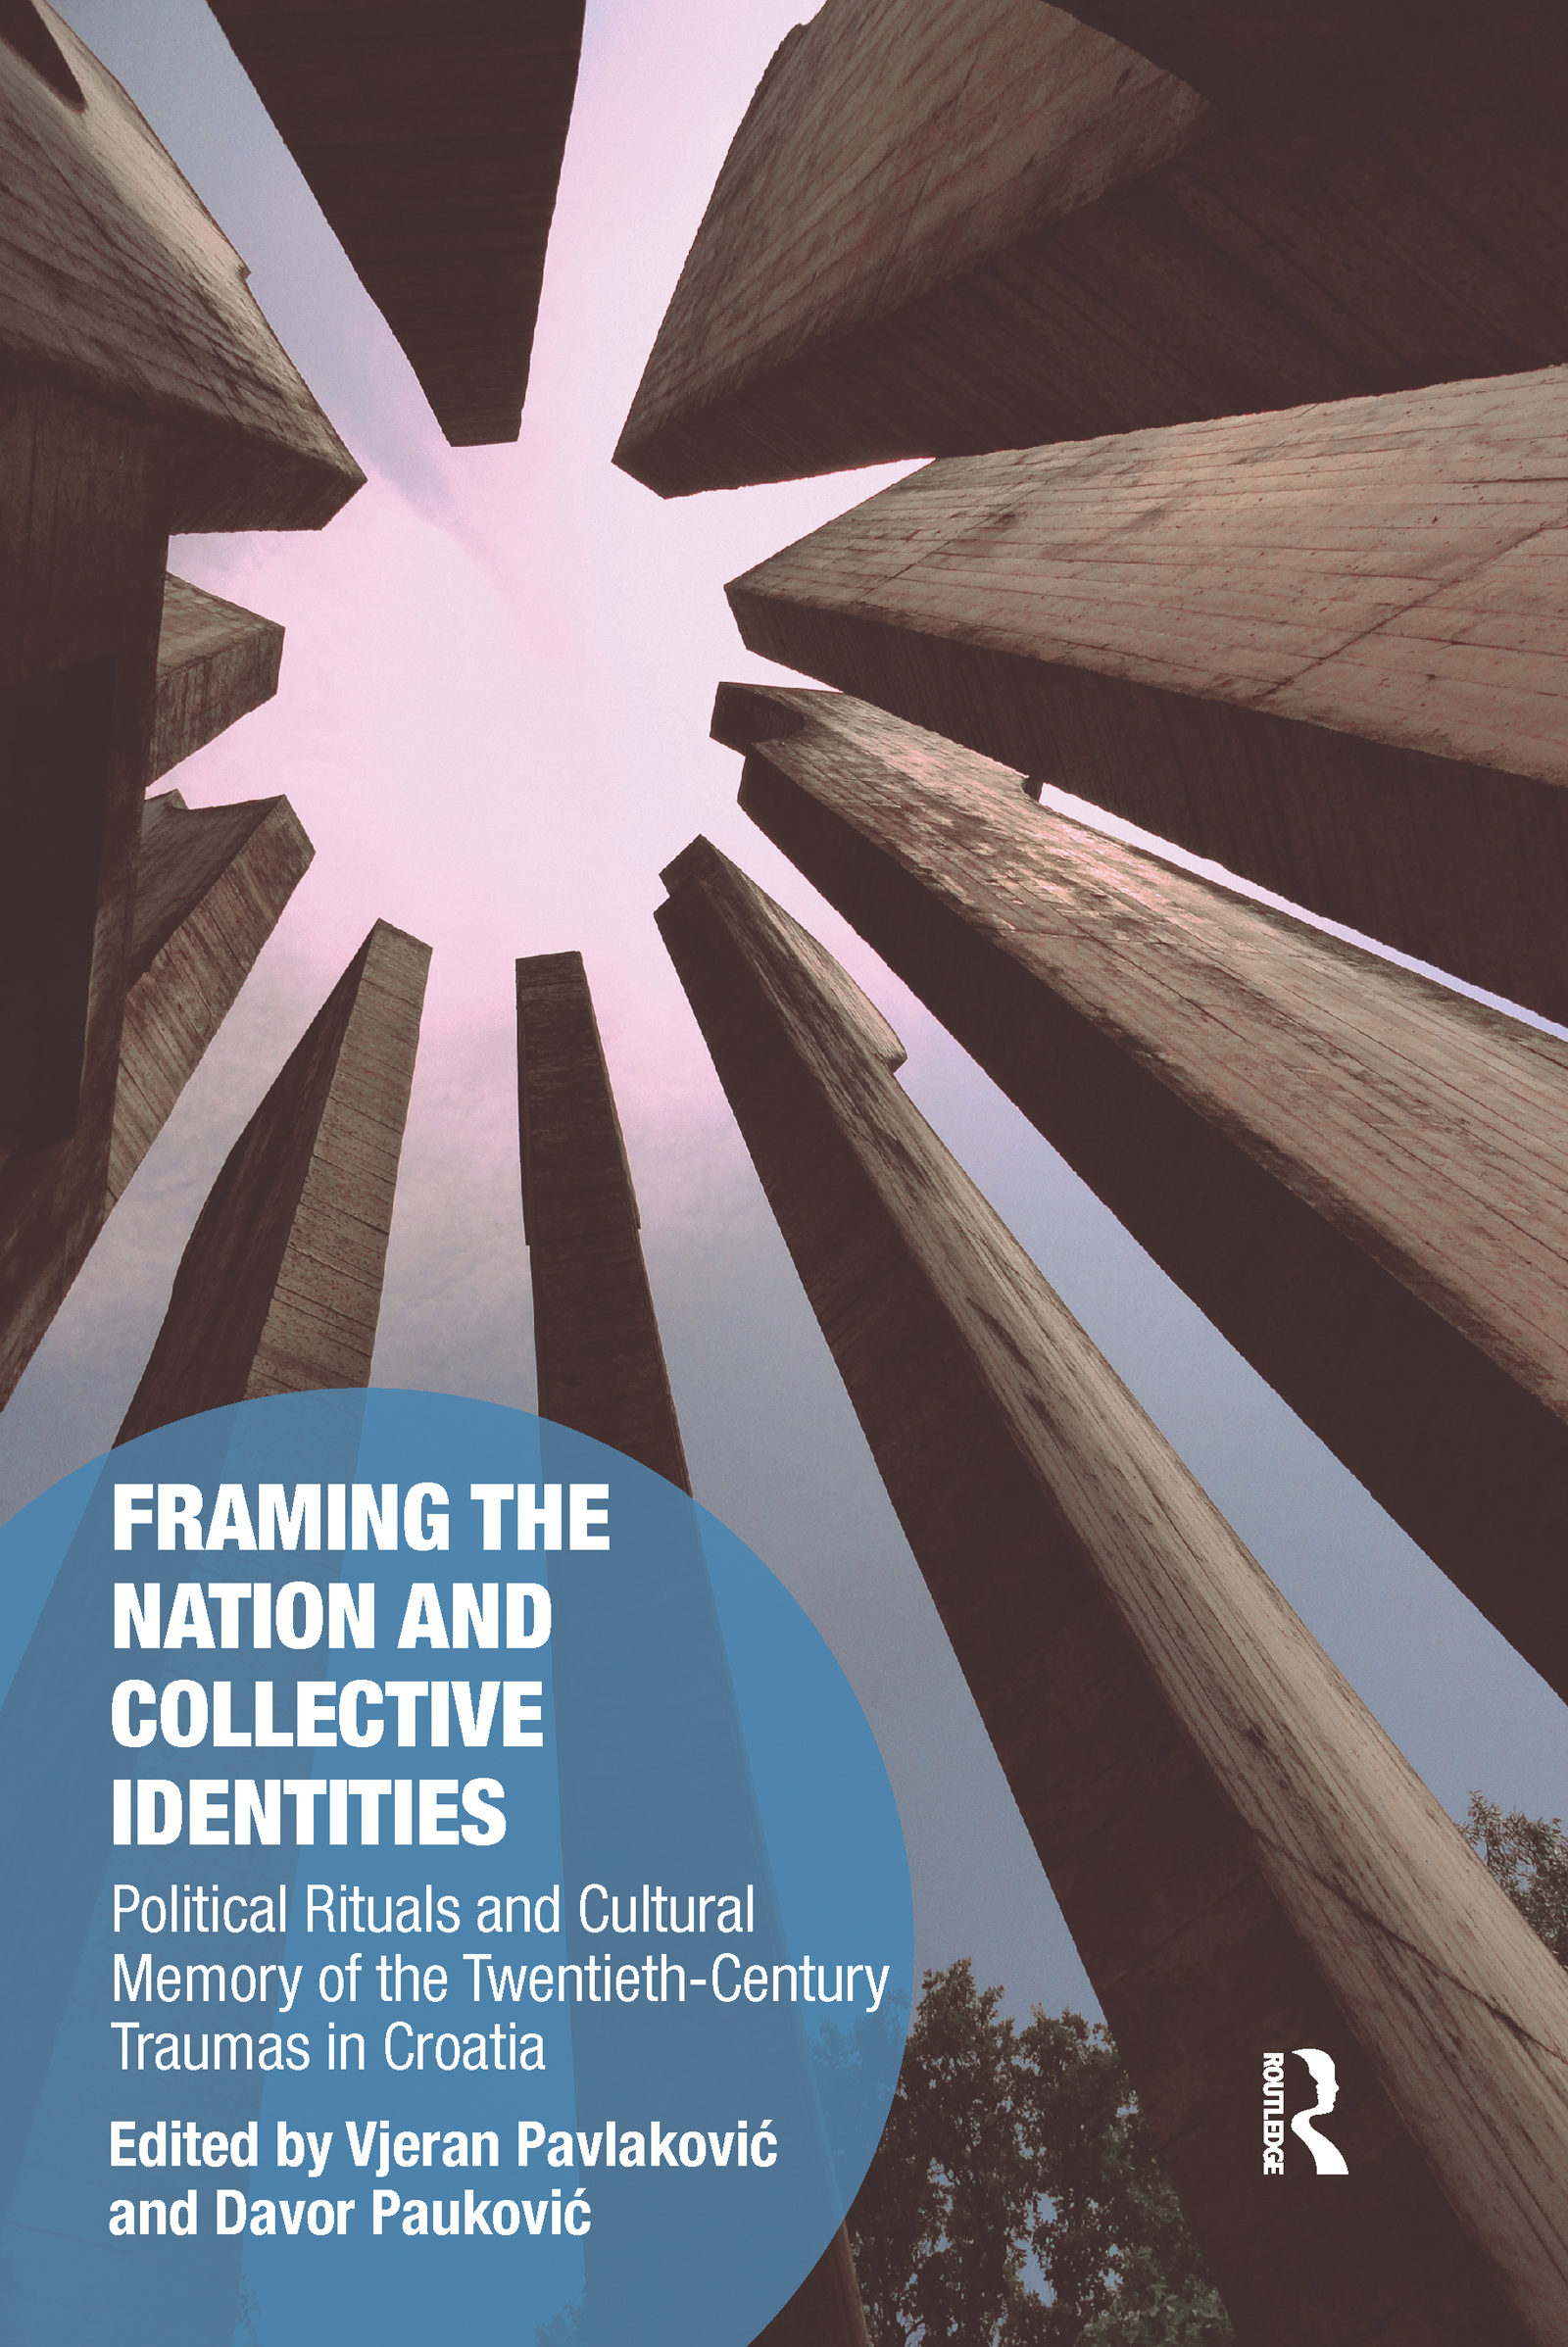 Framing the Nation and Collective Identities